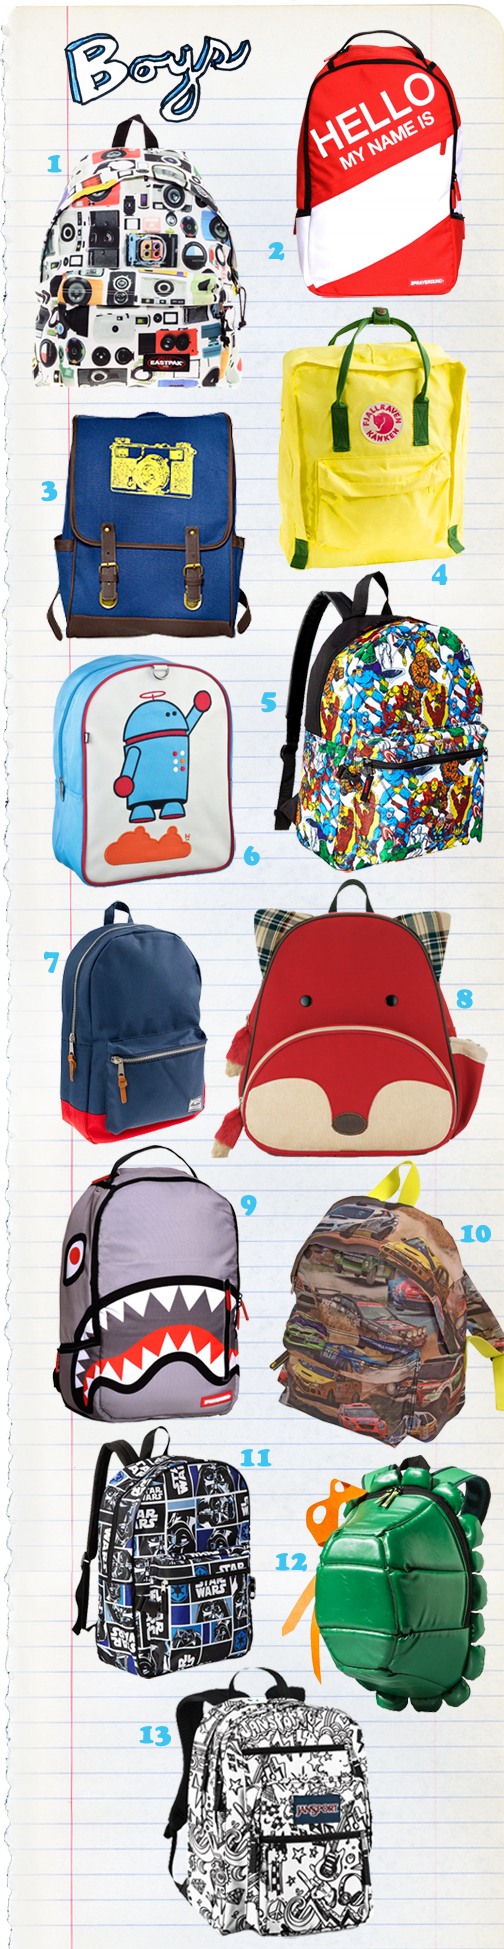 82925efd200 Oilily Backpack | Super Goody Bag